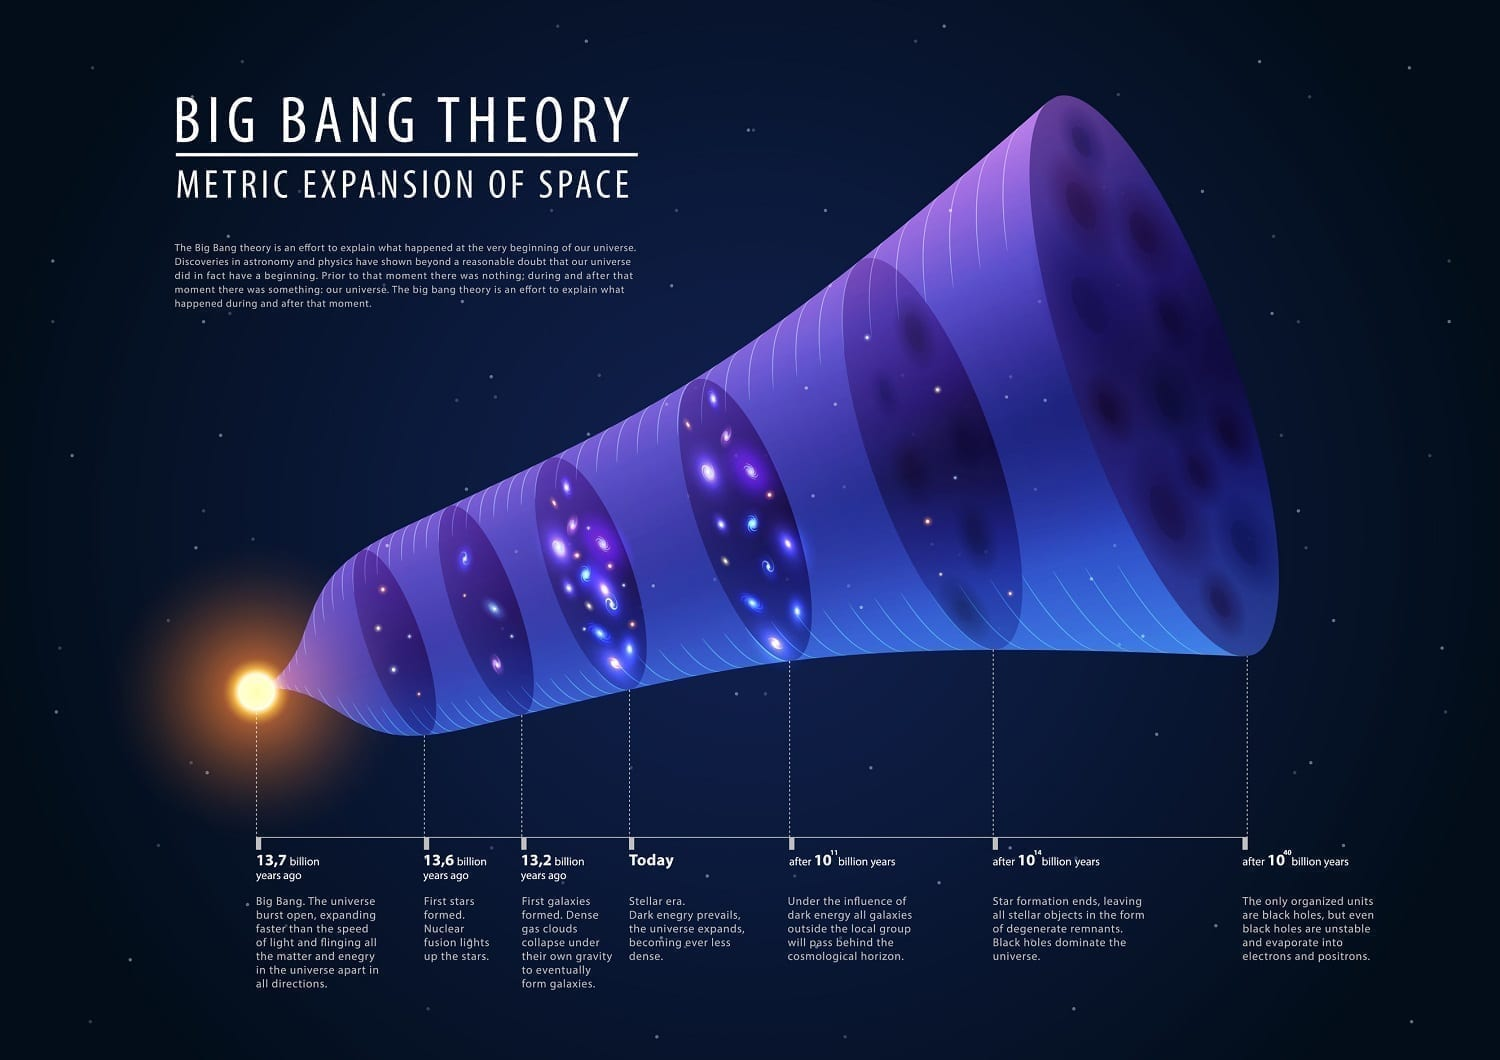 Big Bang timeline illustration: dreamstime ID: 56112424